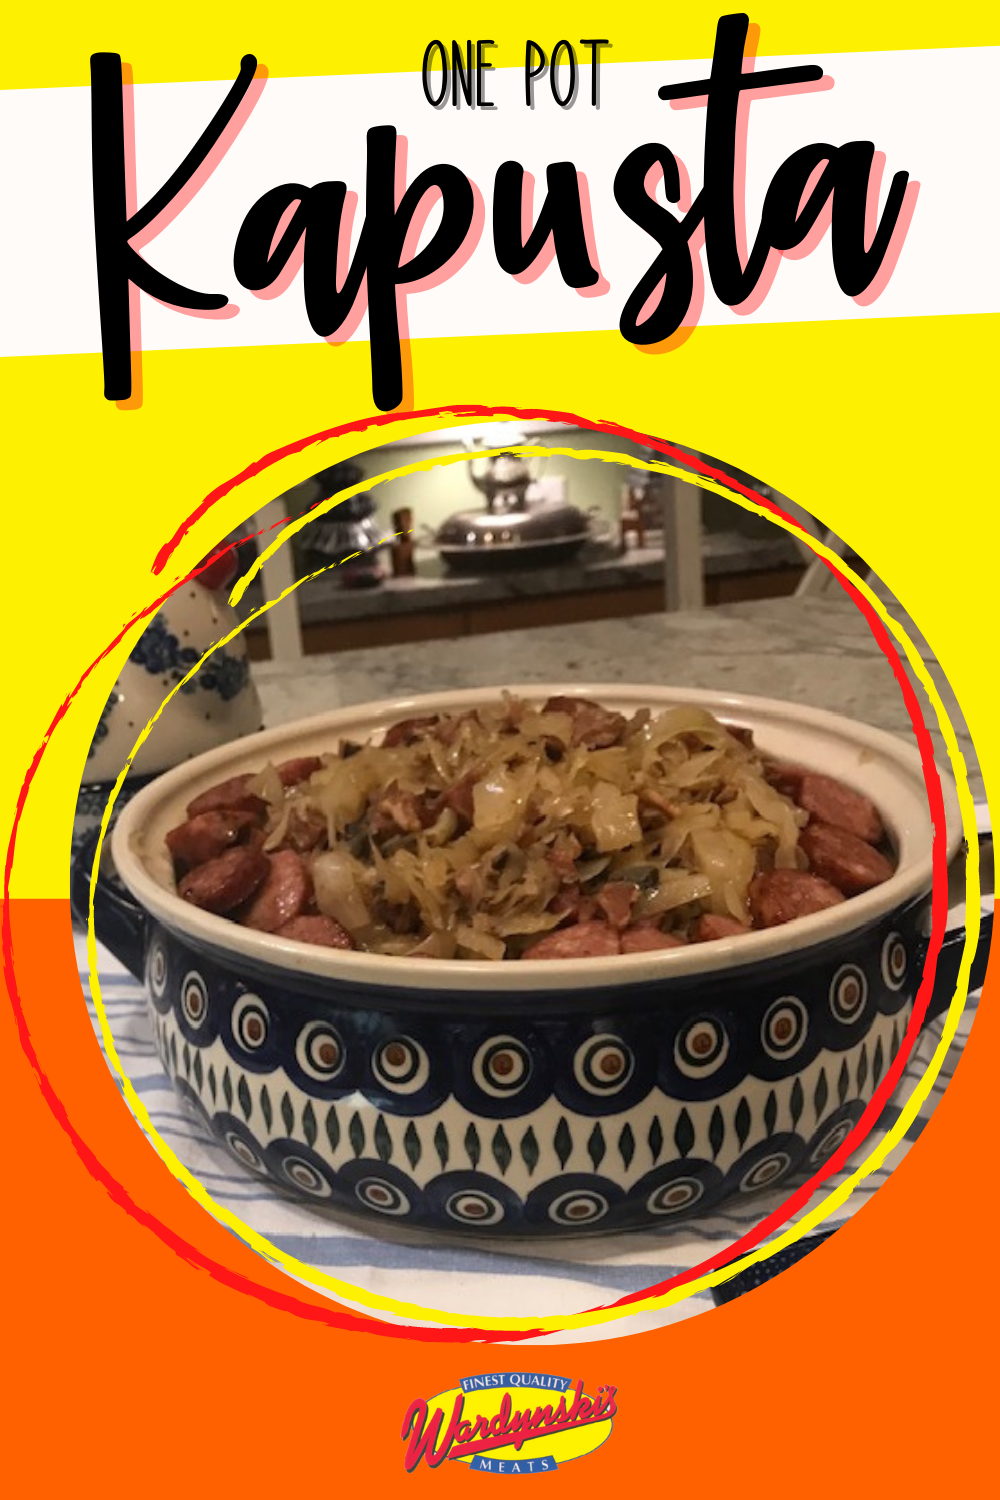 Check out this recipe for Kapusta, an easy one pot meal!